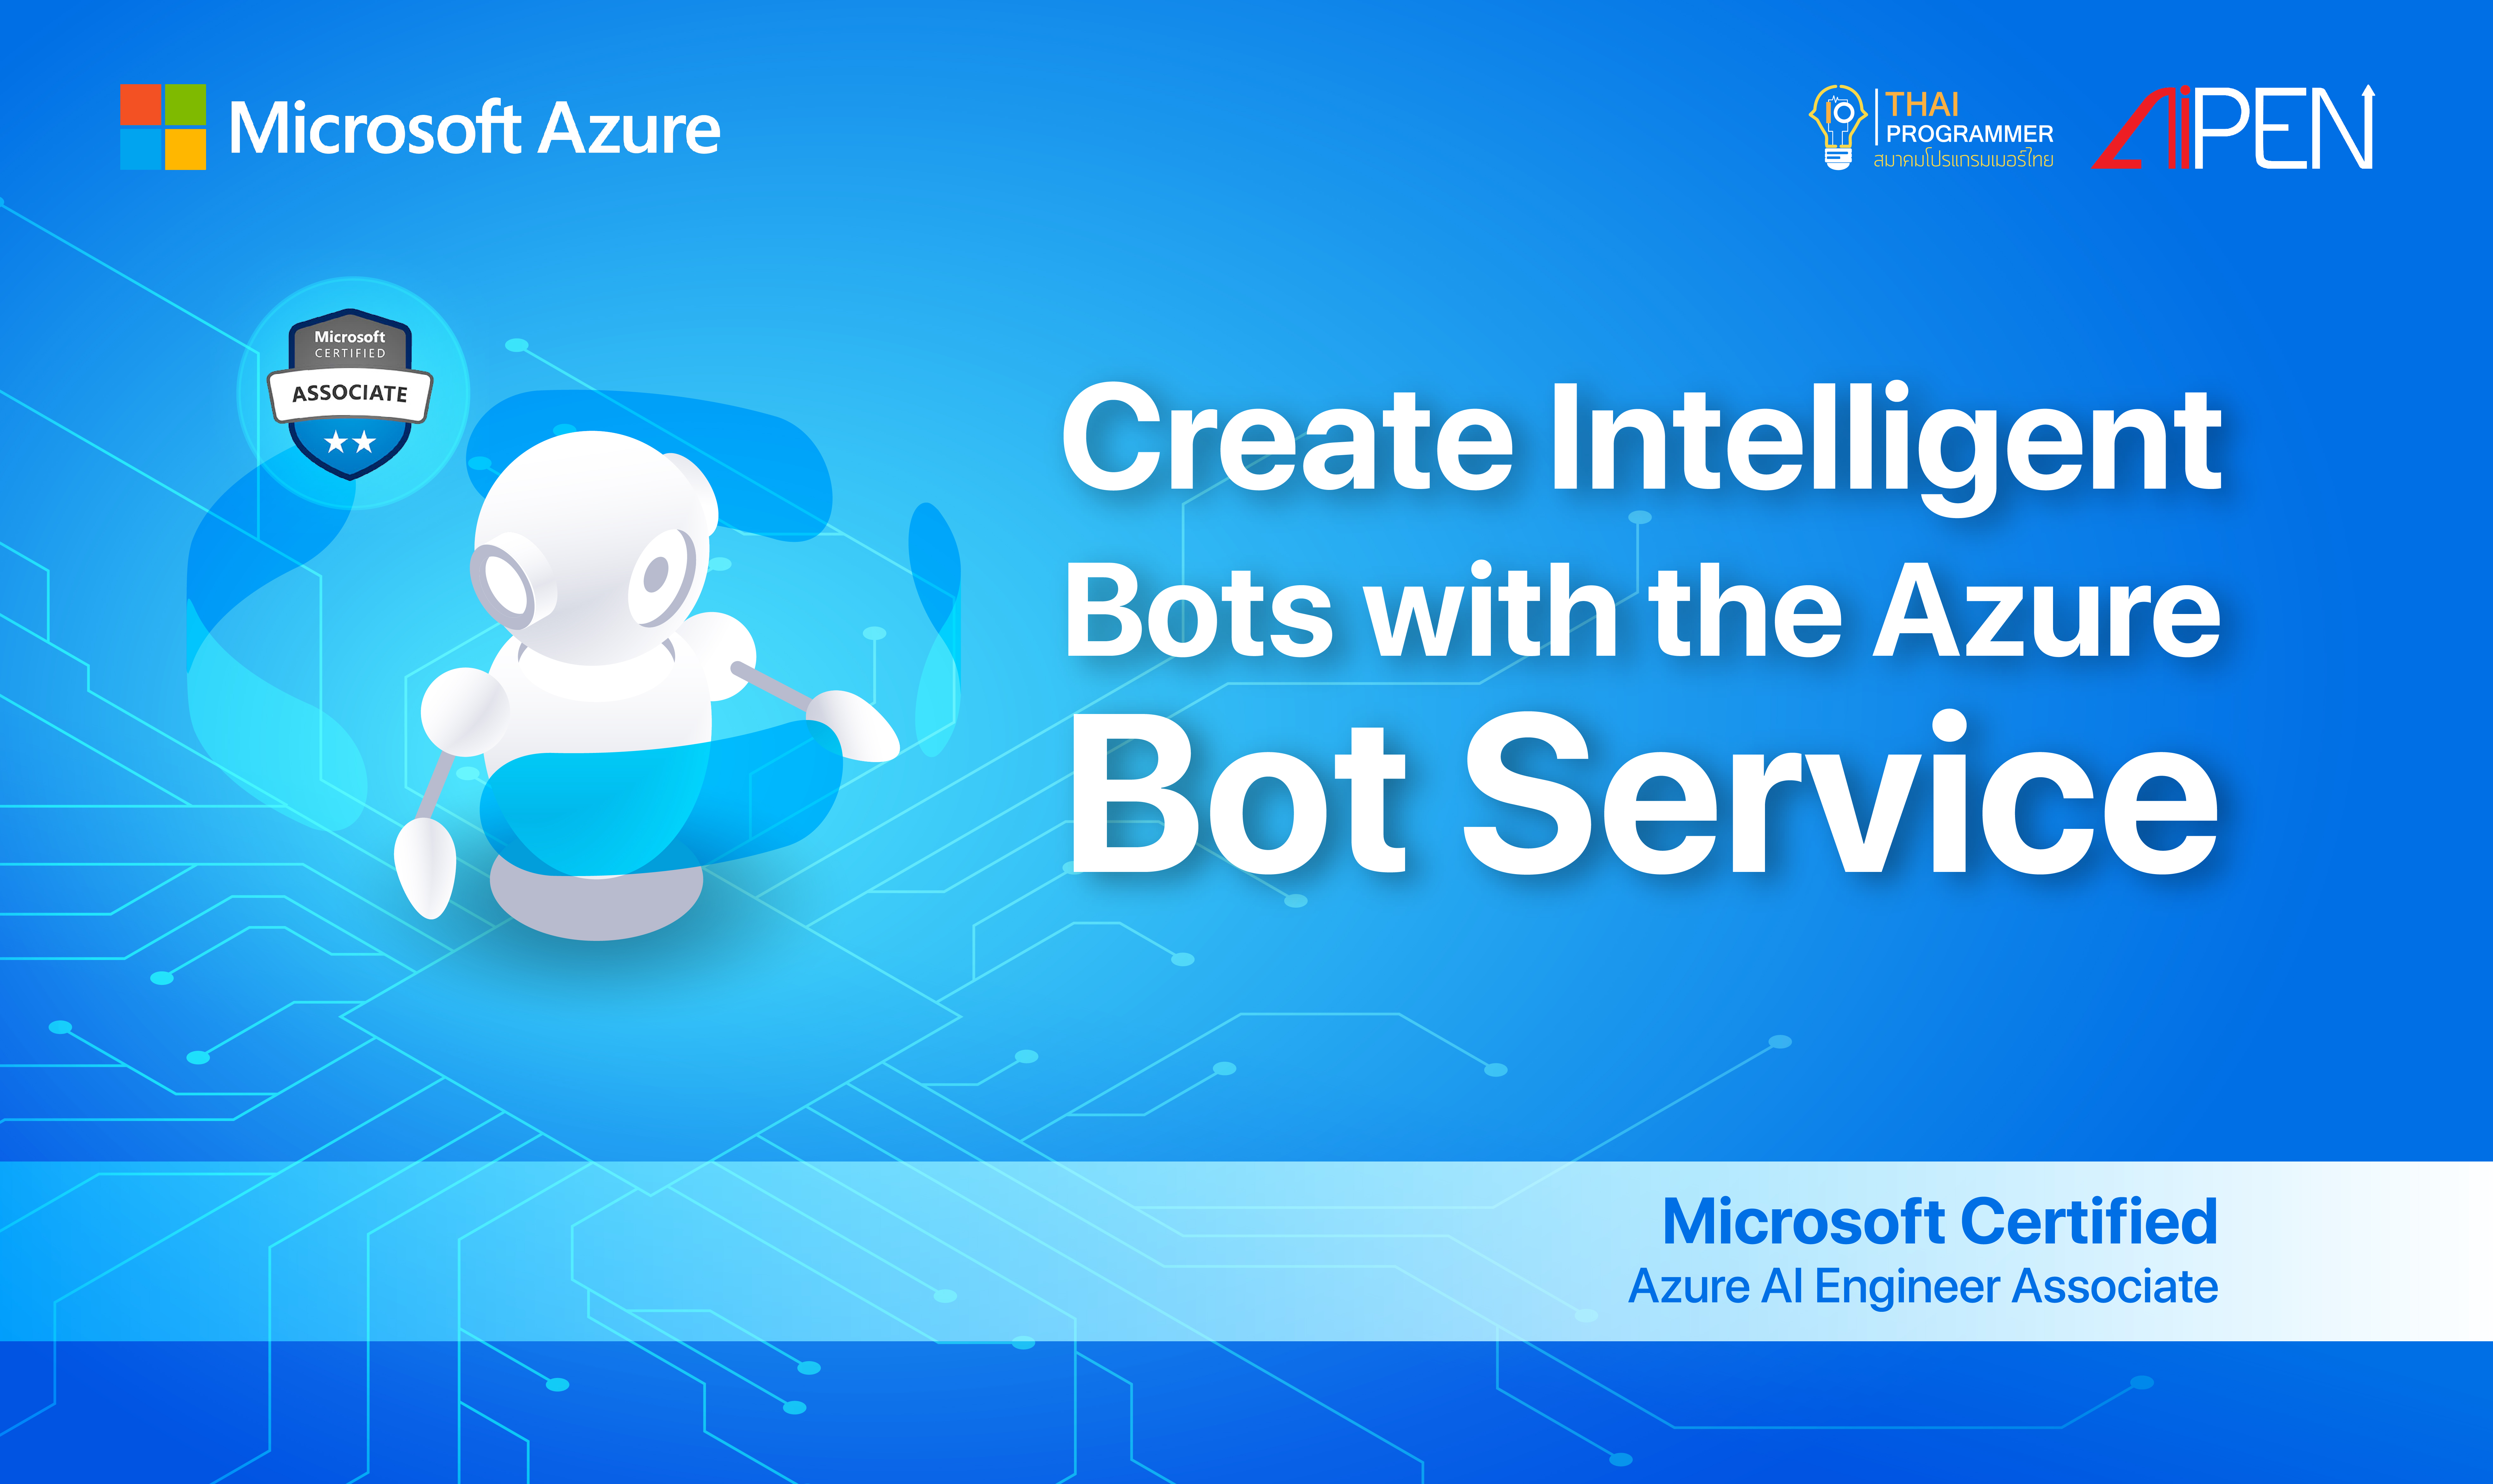 Microsoft Azure : Create Intelligent Bots with the Azure Bot Service AZ-LEARN-17